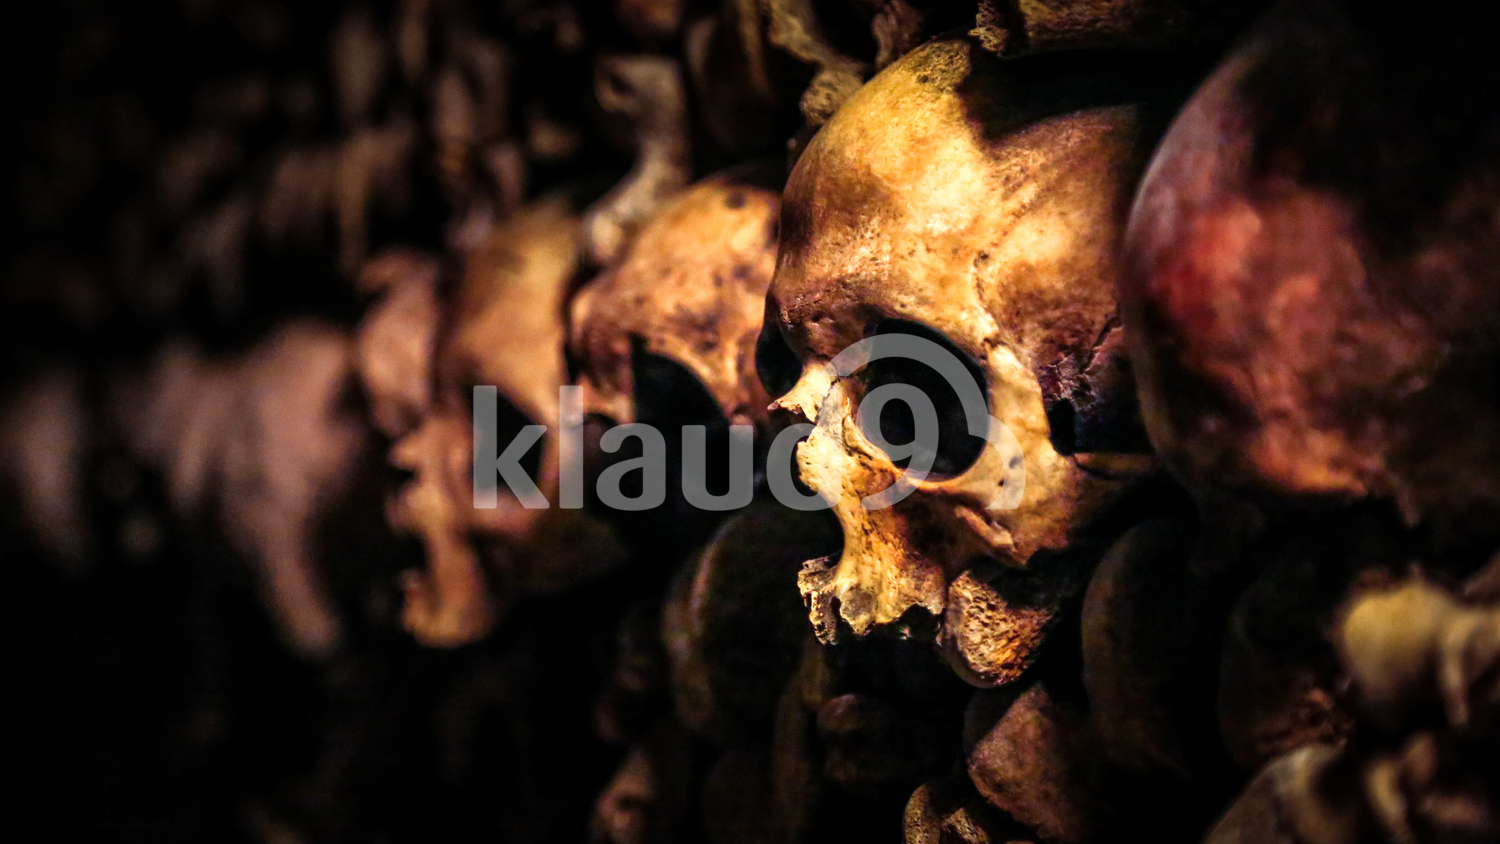 Skulls in the Catacombs of Paris